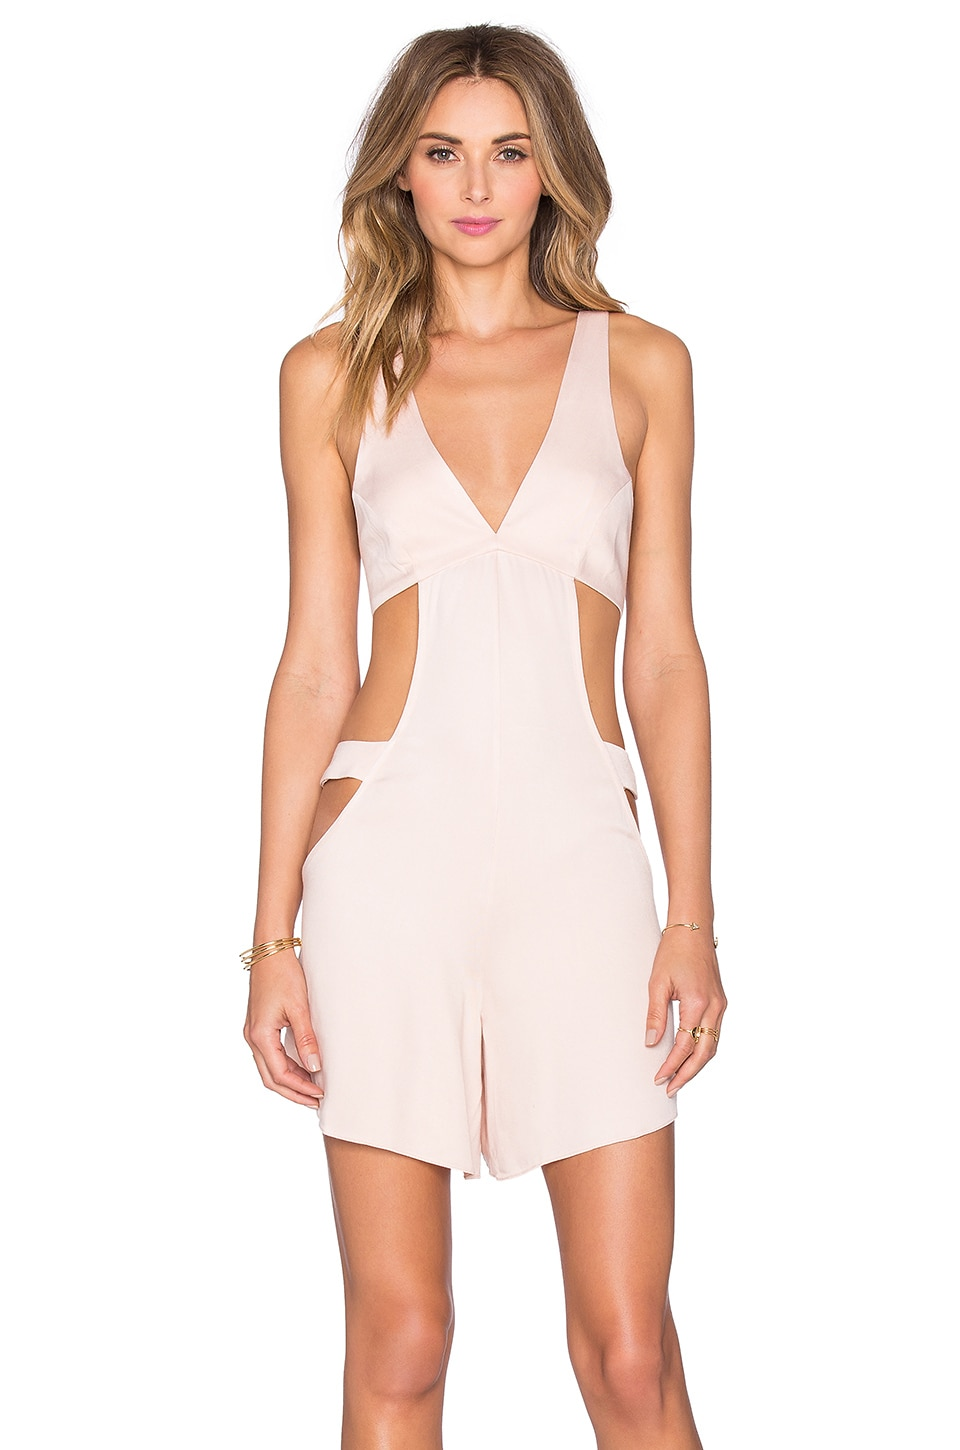 Twill Chalis Romper by ADRIANA DEGREAS